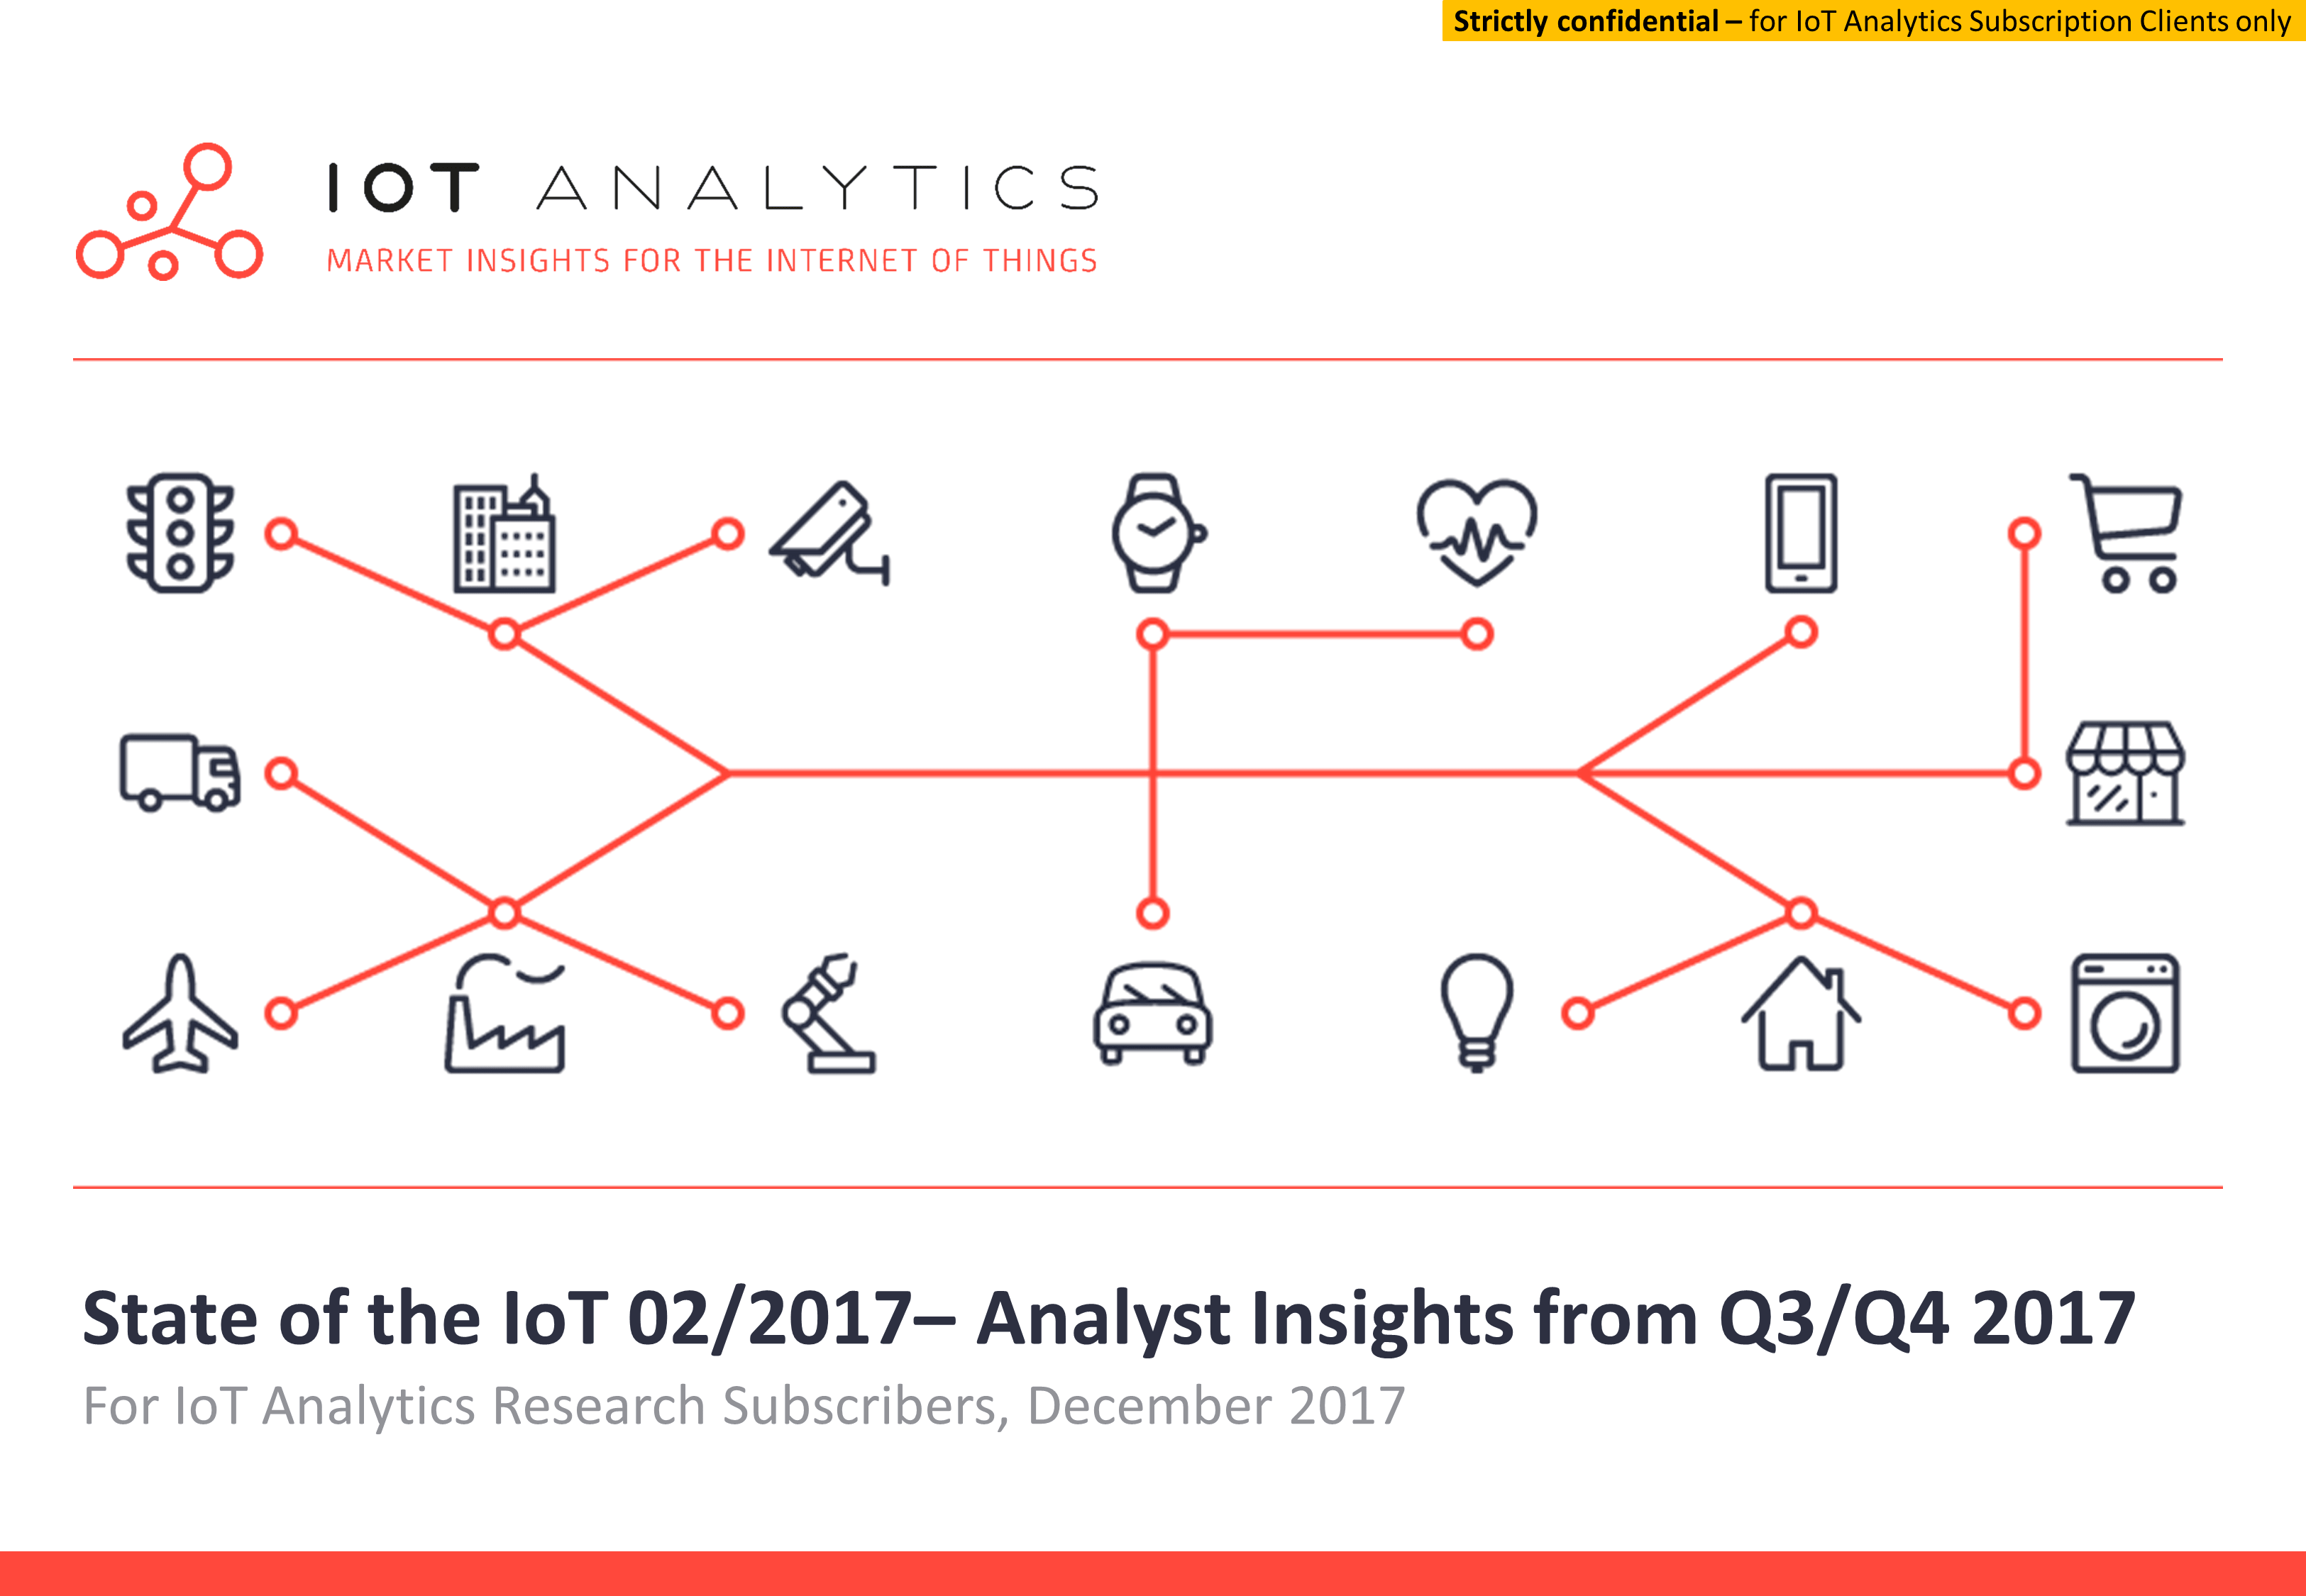 State of the IoT Market Report 2017